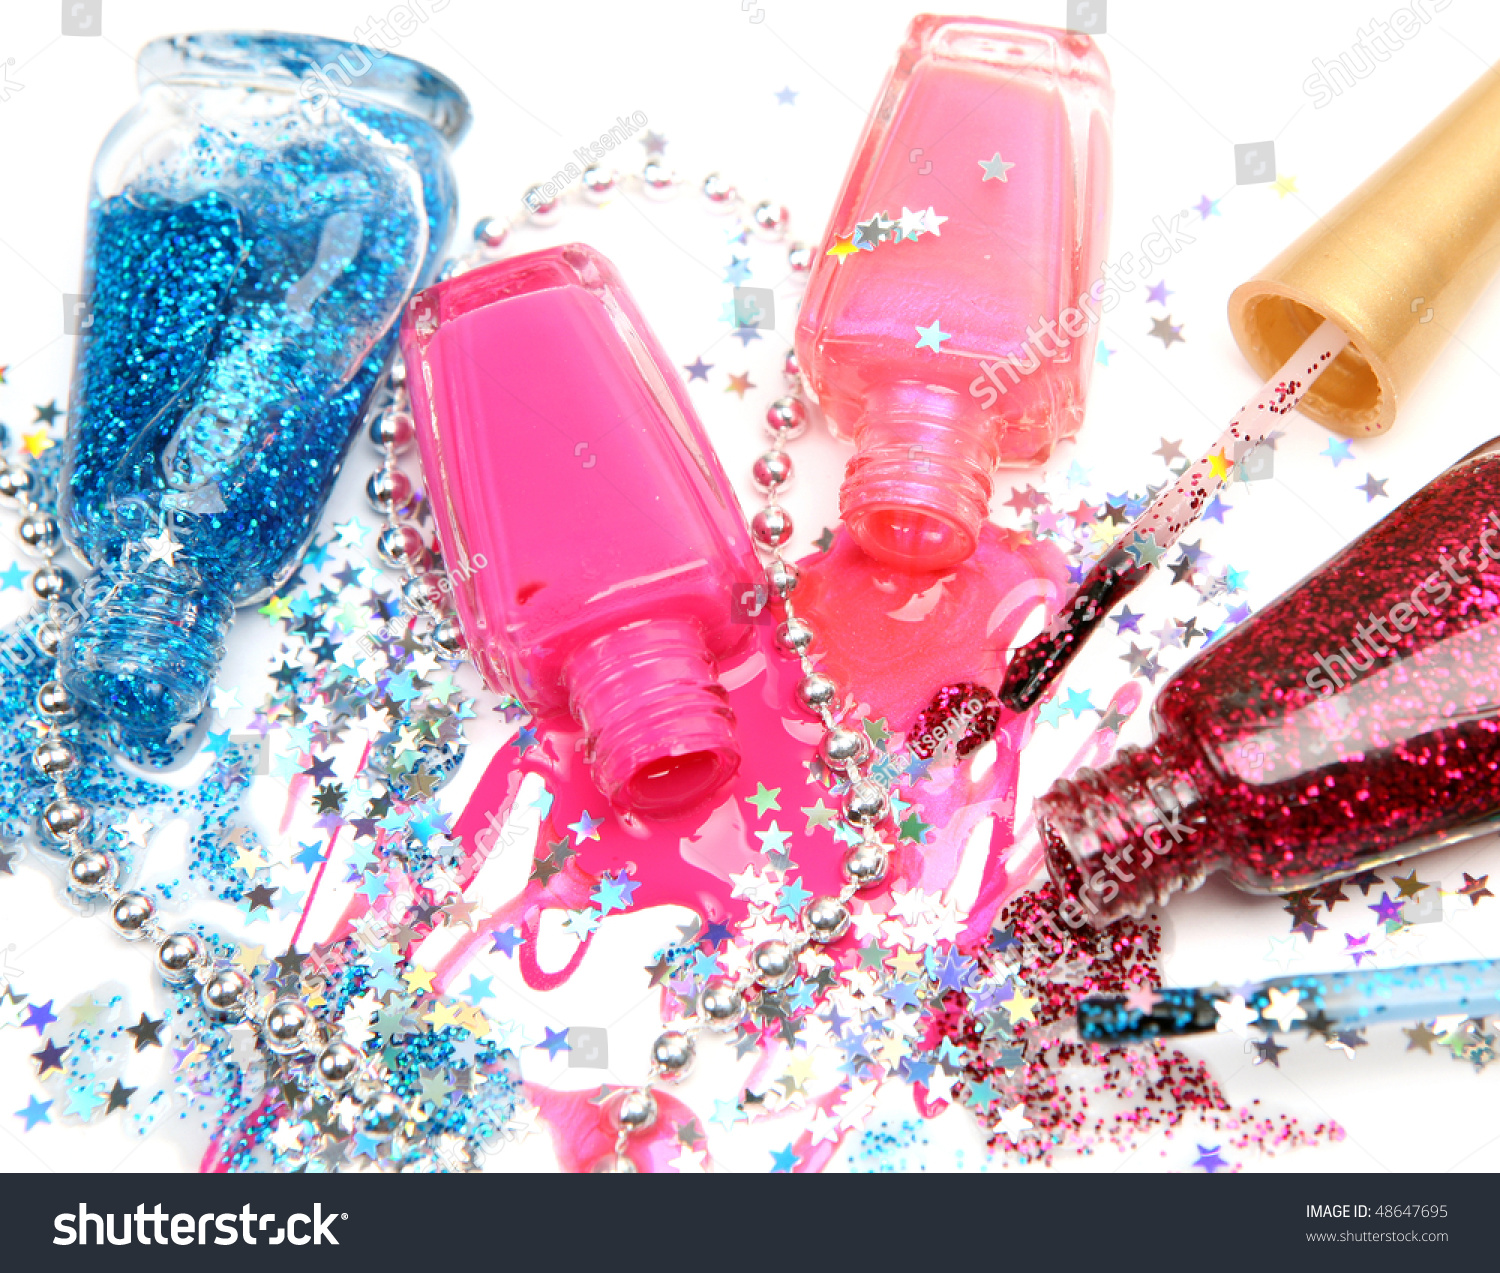 Color Nail Polish Stock Photo 48647695 : Shutterstock